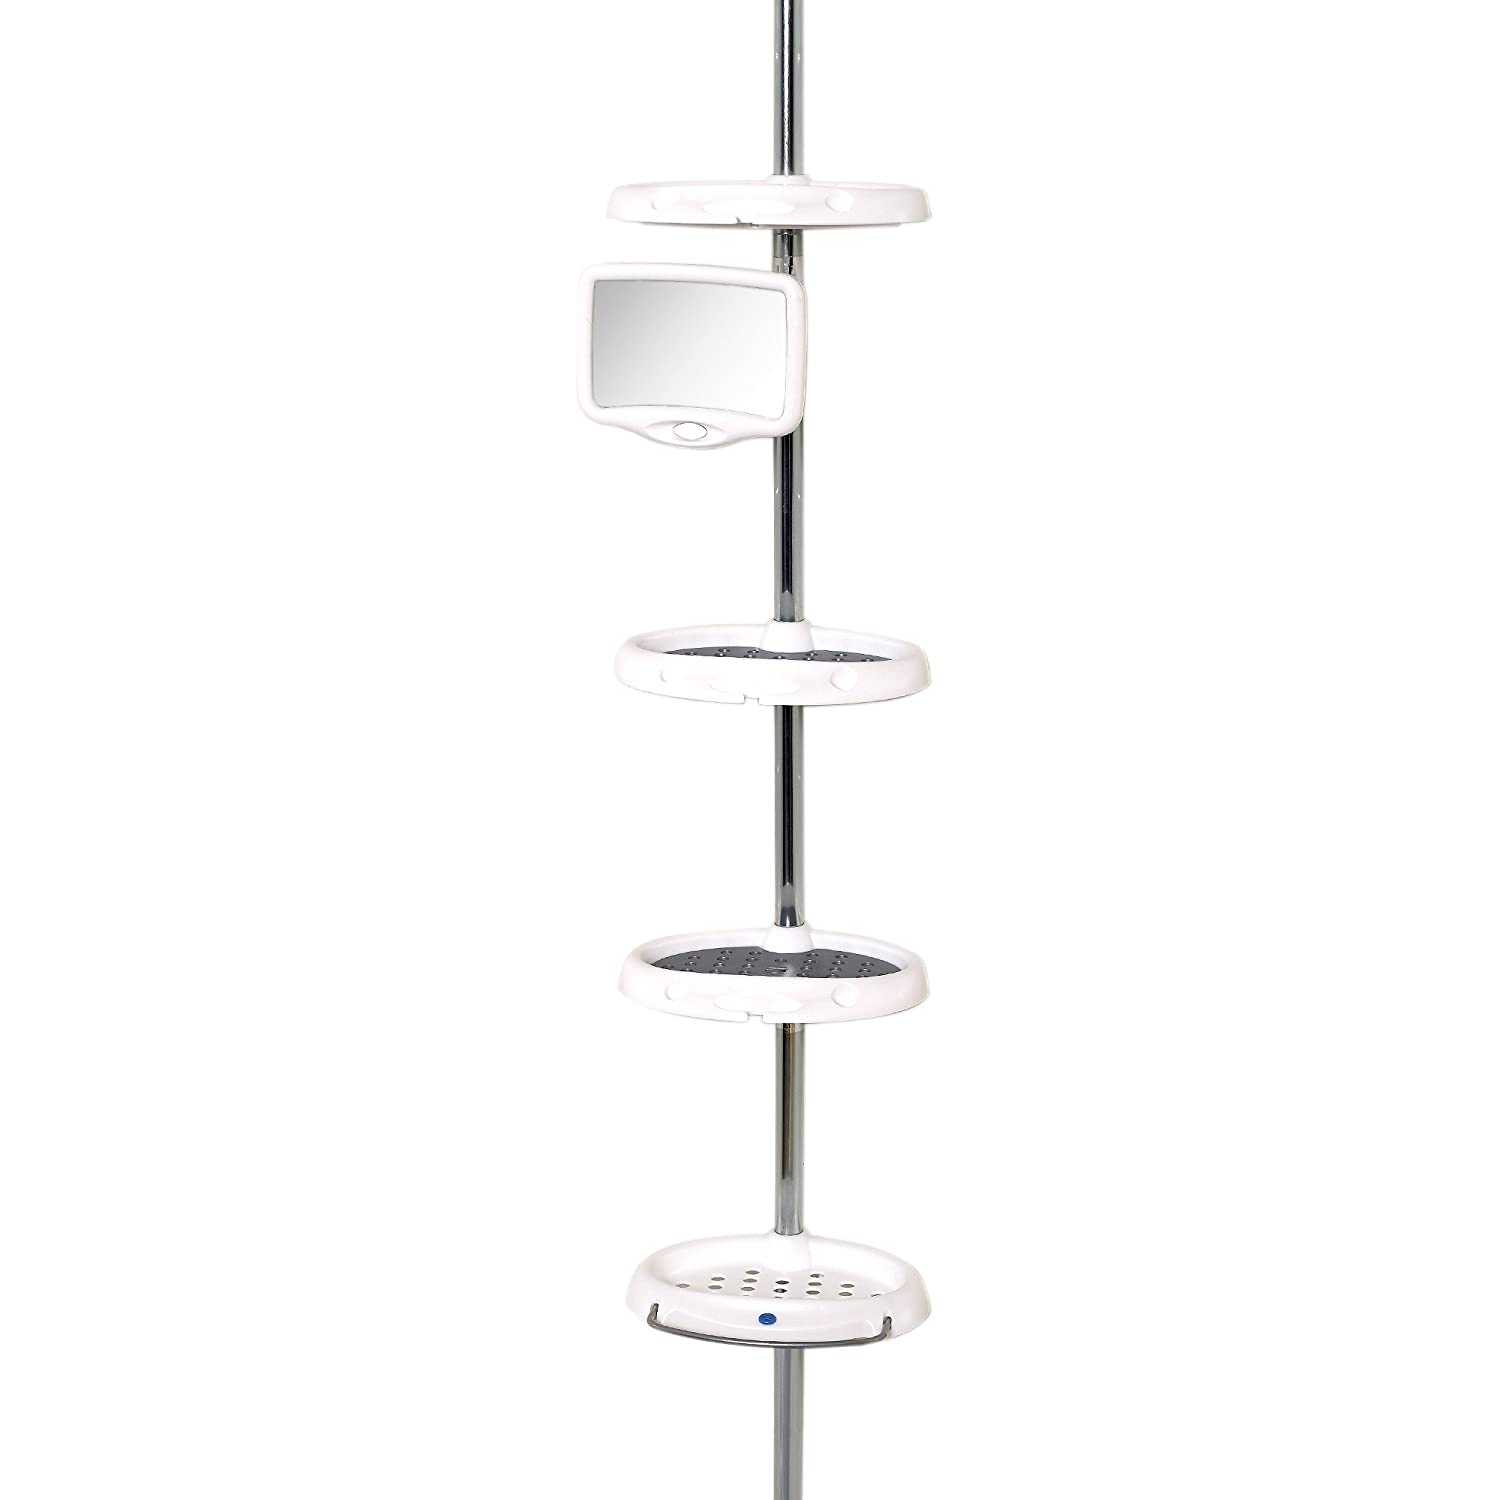 Zenith Bathstyles Tension Pole Caddy, Chrome/Plastic Zenith Products 5804B